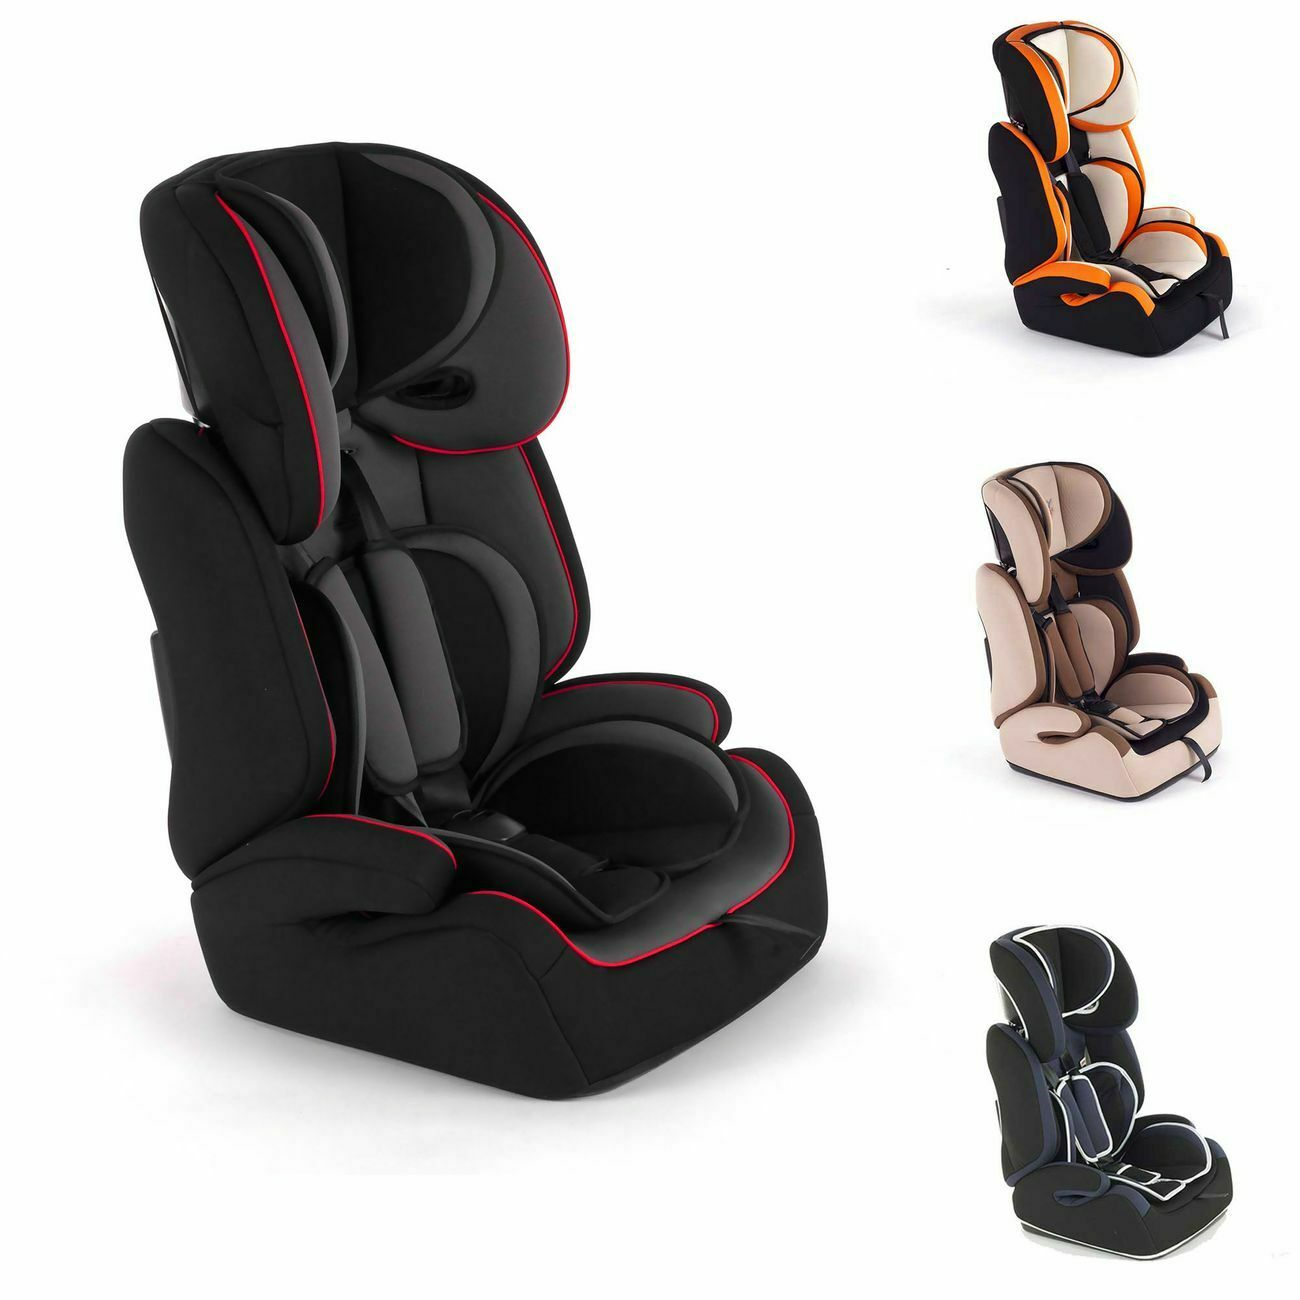 autokindersitz kinderautositz autositz kindersitz 9 36 kg f r gruppe 1 2 3 neu eur 37 99. Black Bedroom Furniture Sets. Home Design Ideas